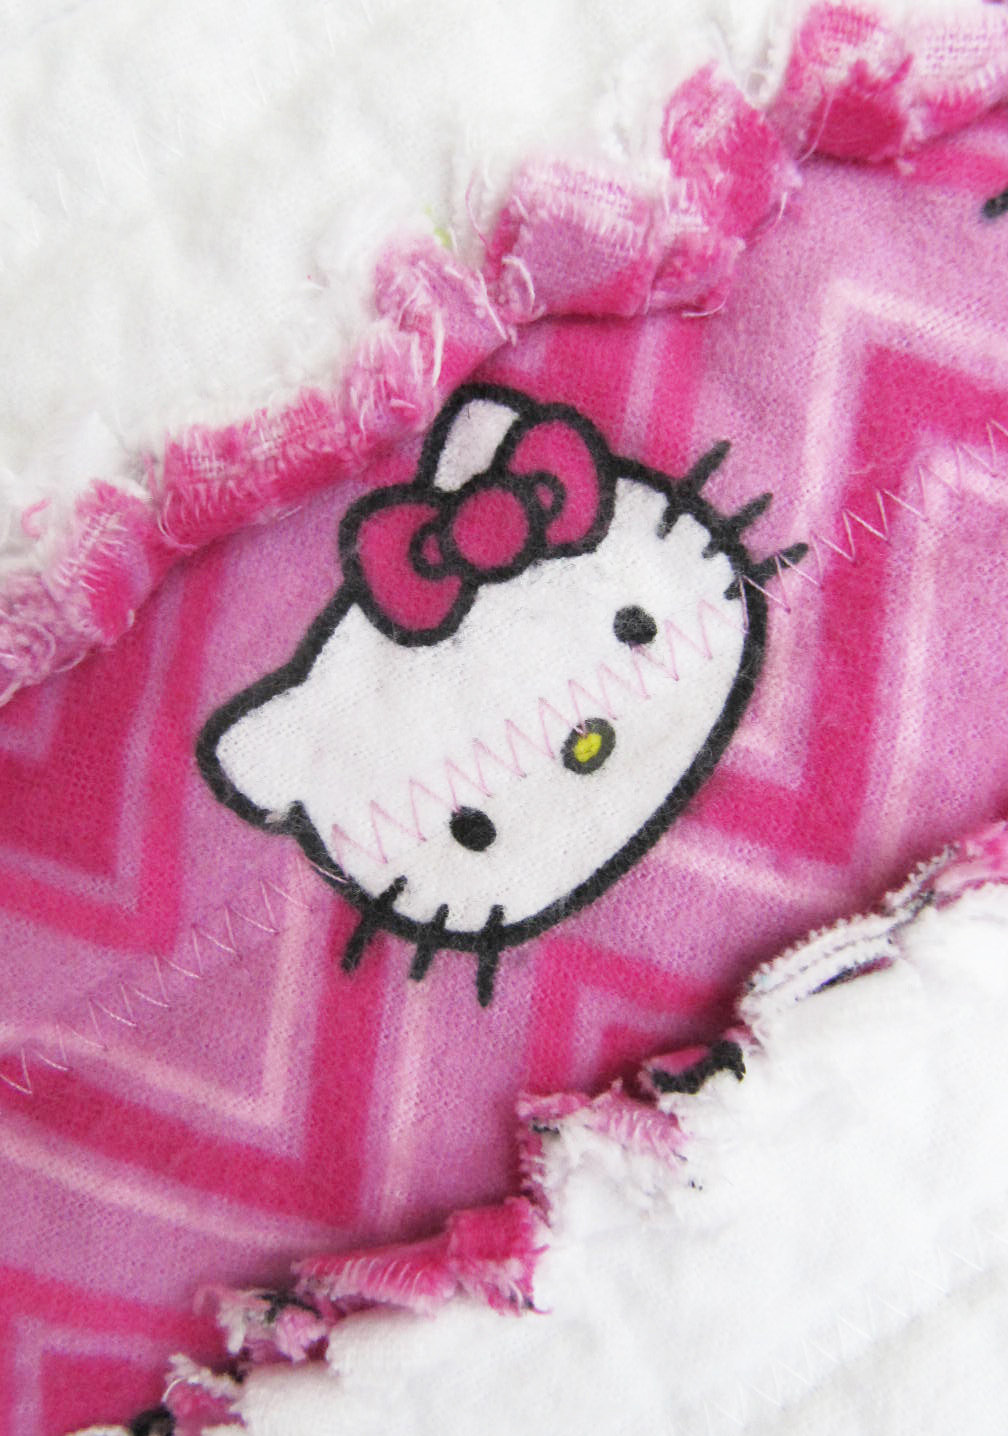 Hello Kitty Baby Quilt for Baby Girl in pink and white - baby girl blanket, crib/nursery rag quilt, jelly roll quilt, baby shower gift